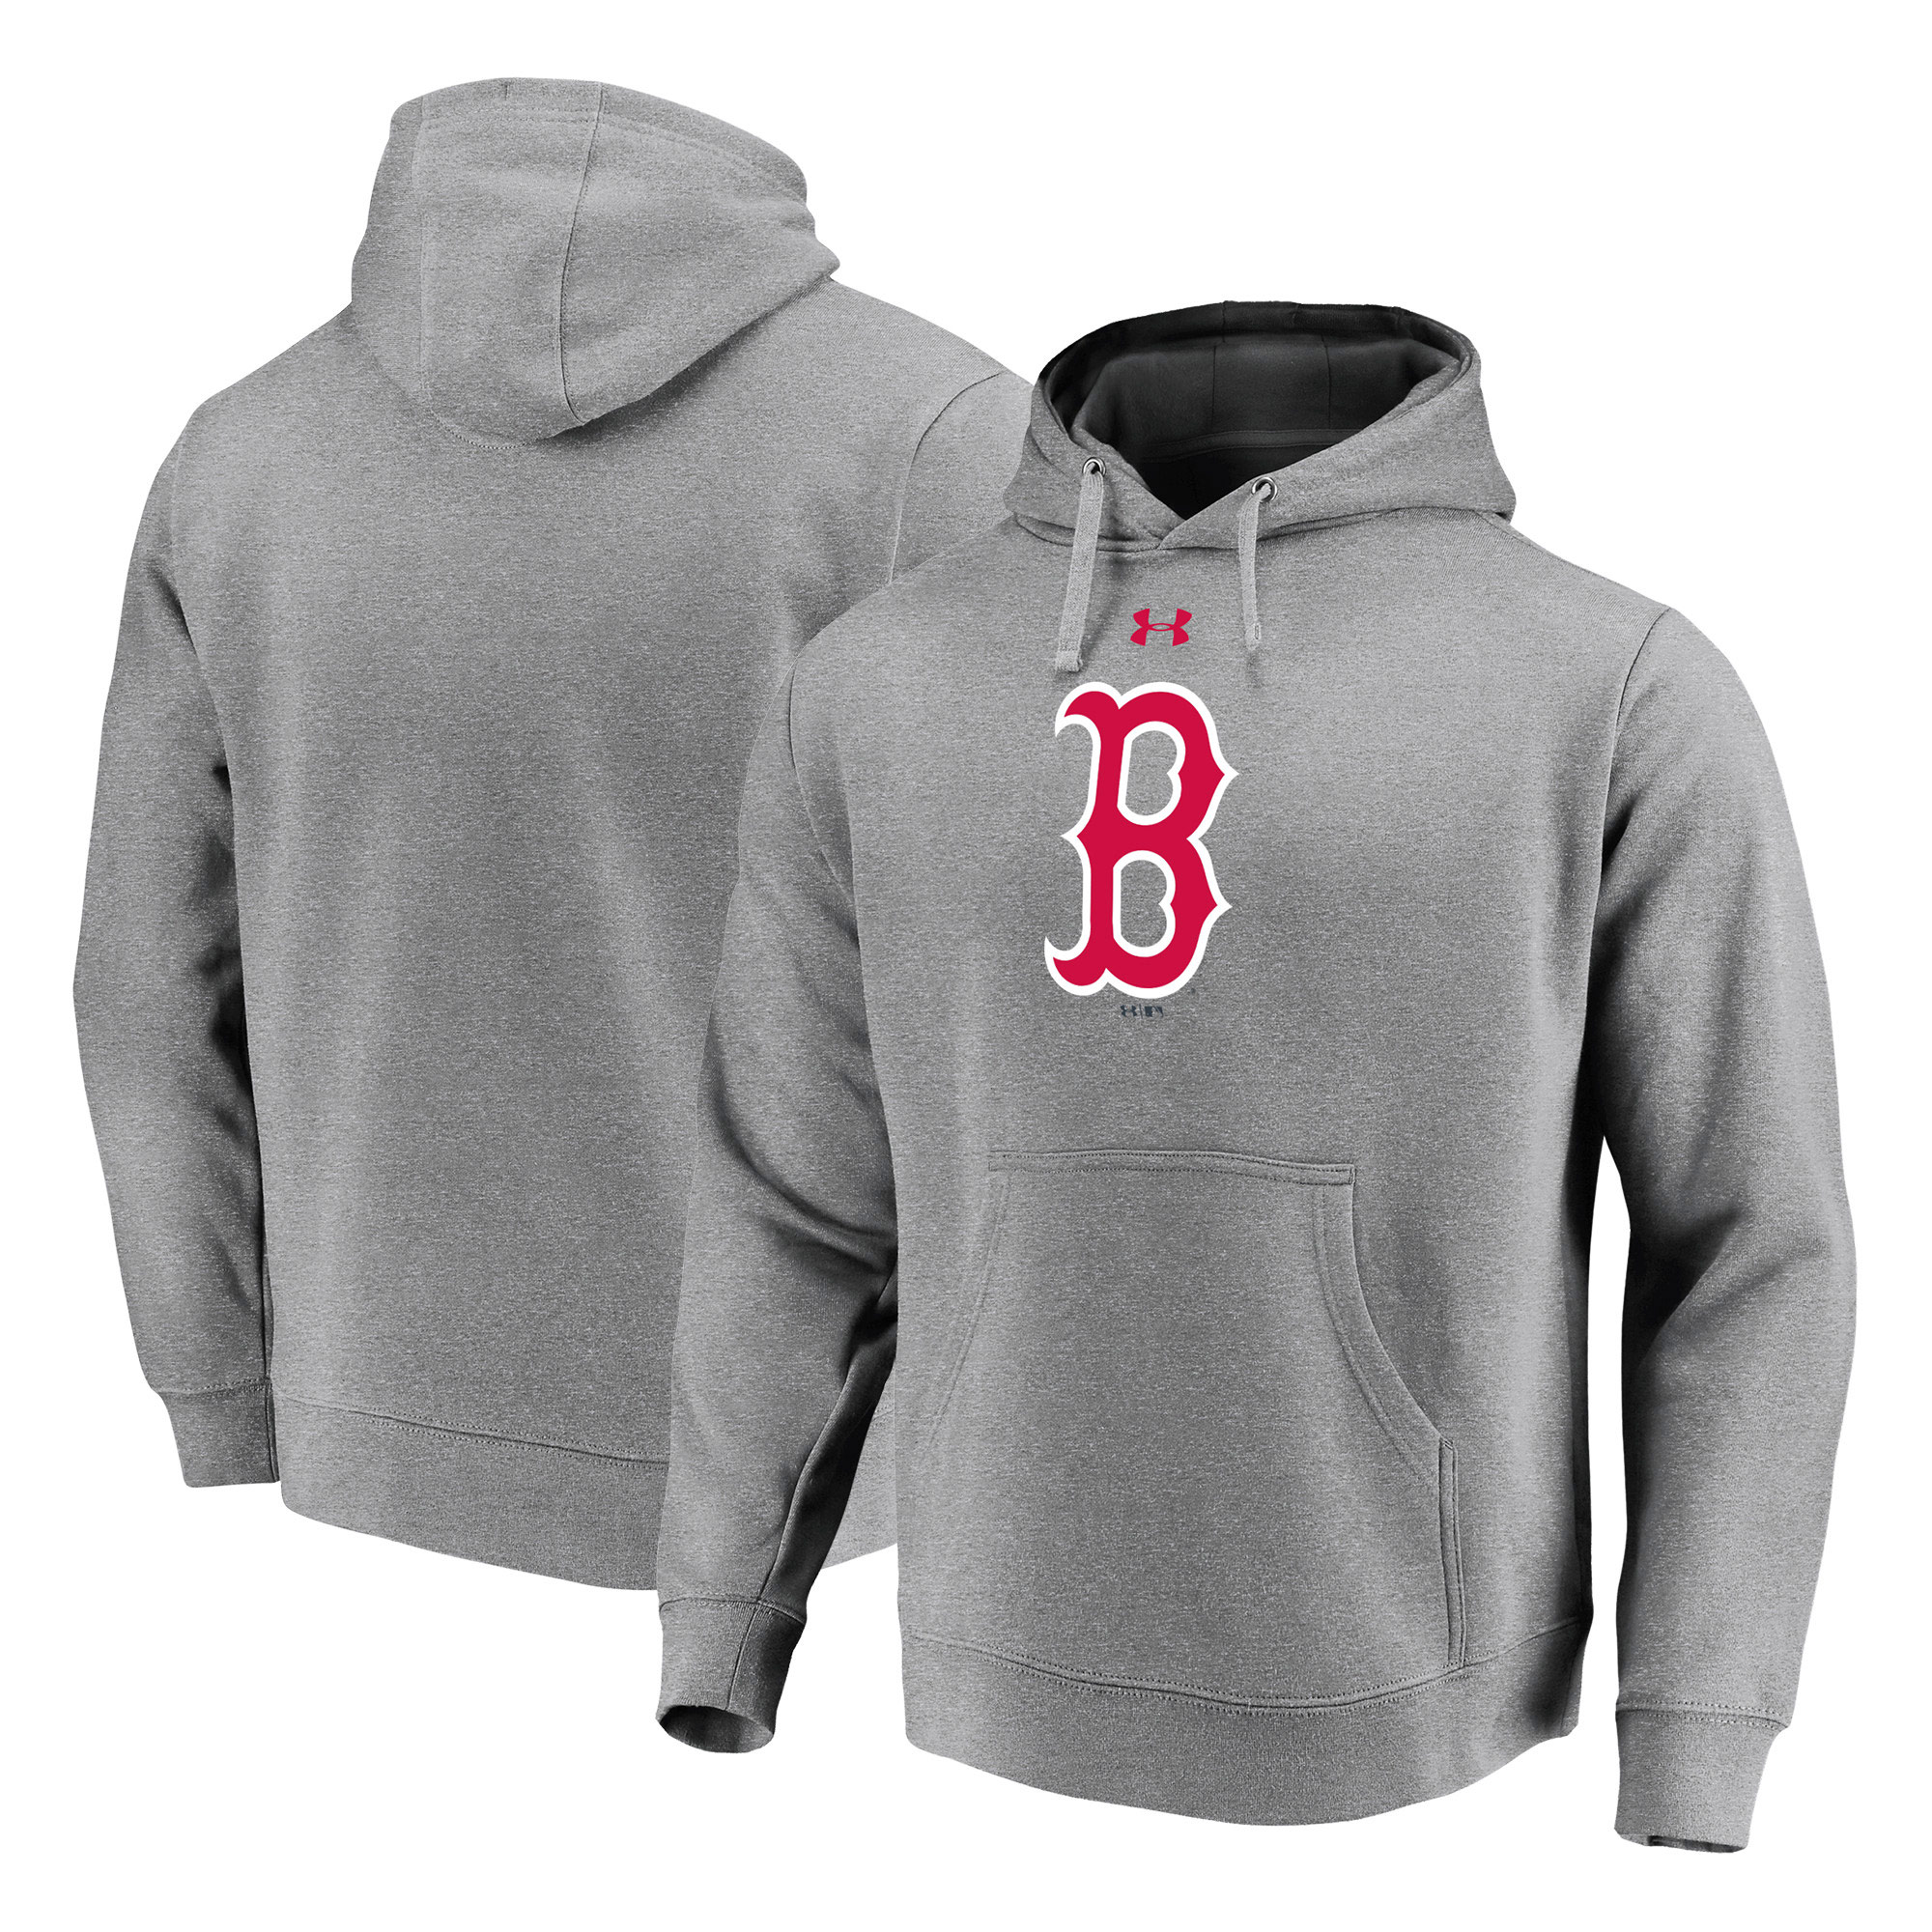 Boston Red Sox Under Armour Commitment Team Mark Performance Pullover Hoodie - Heathered Gray